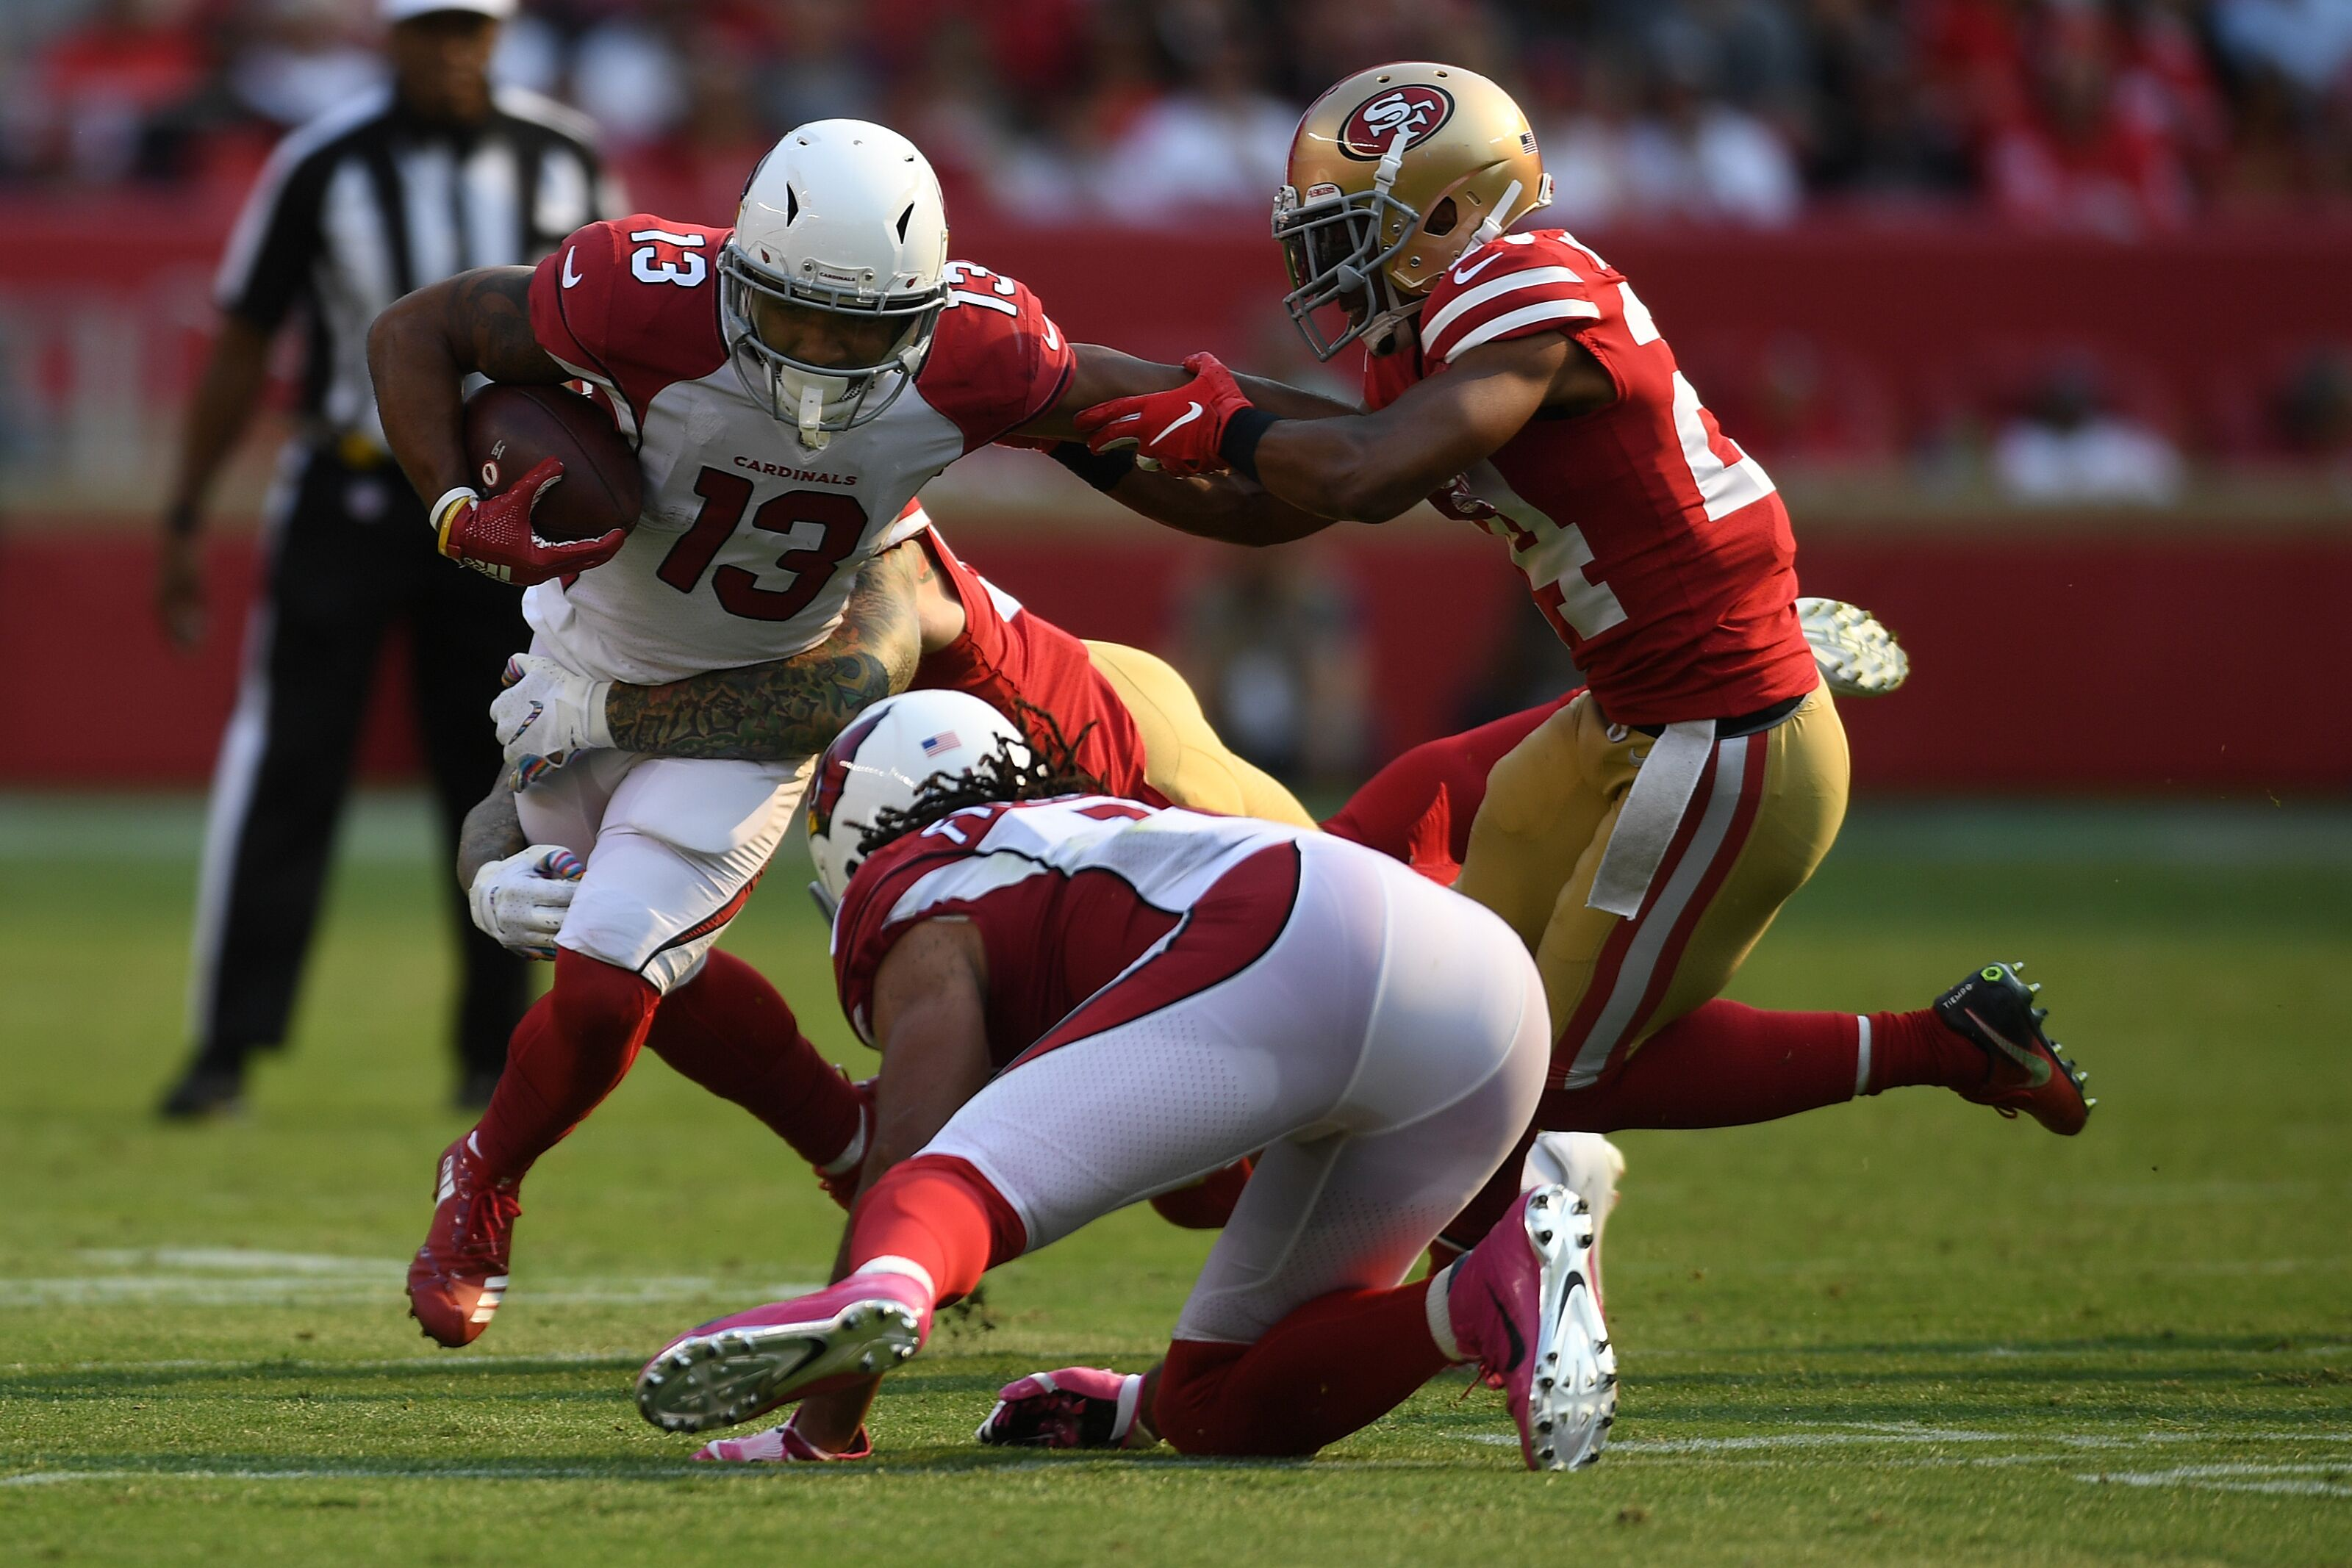 Cardinals vs. 49ers: Betting odds, weather, injuries, matchups to watch